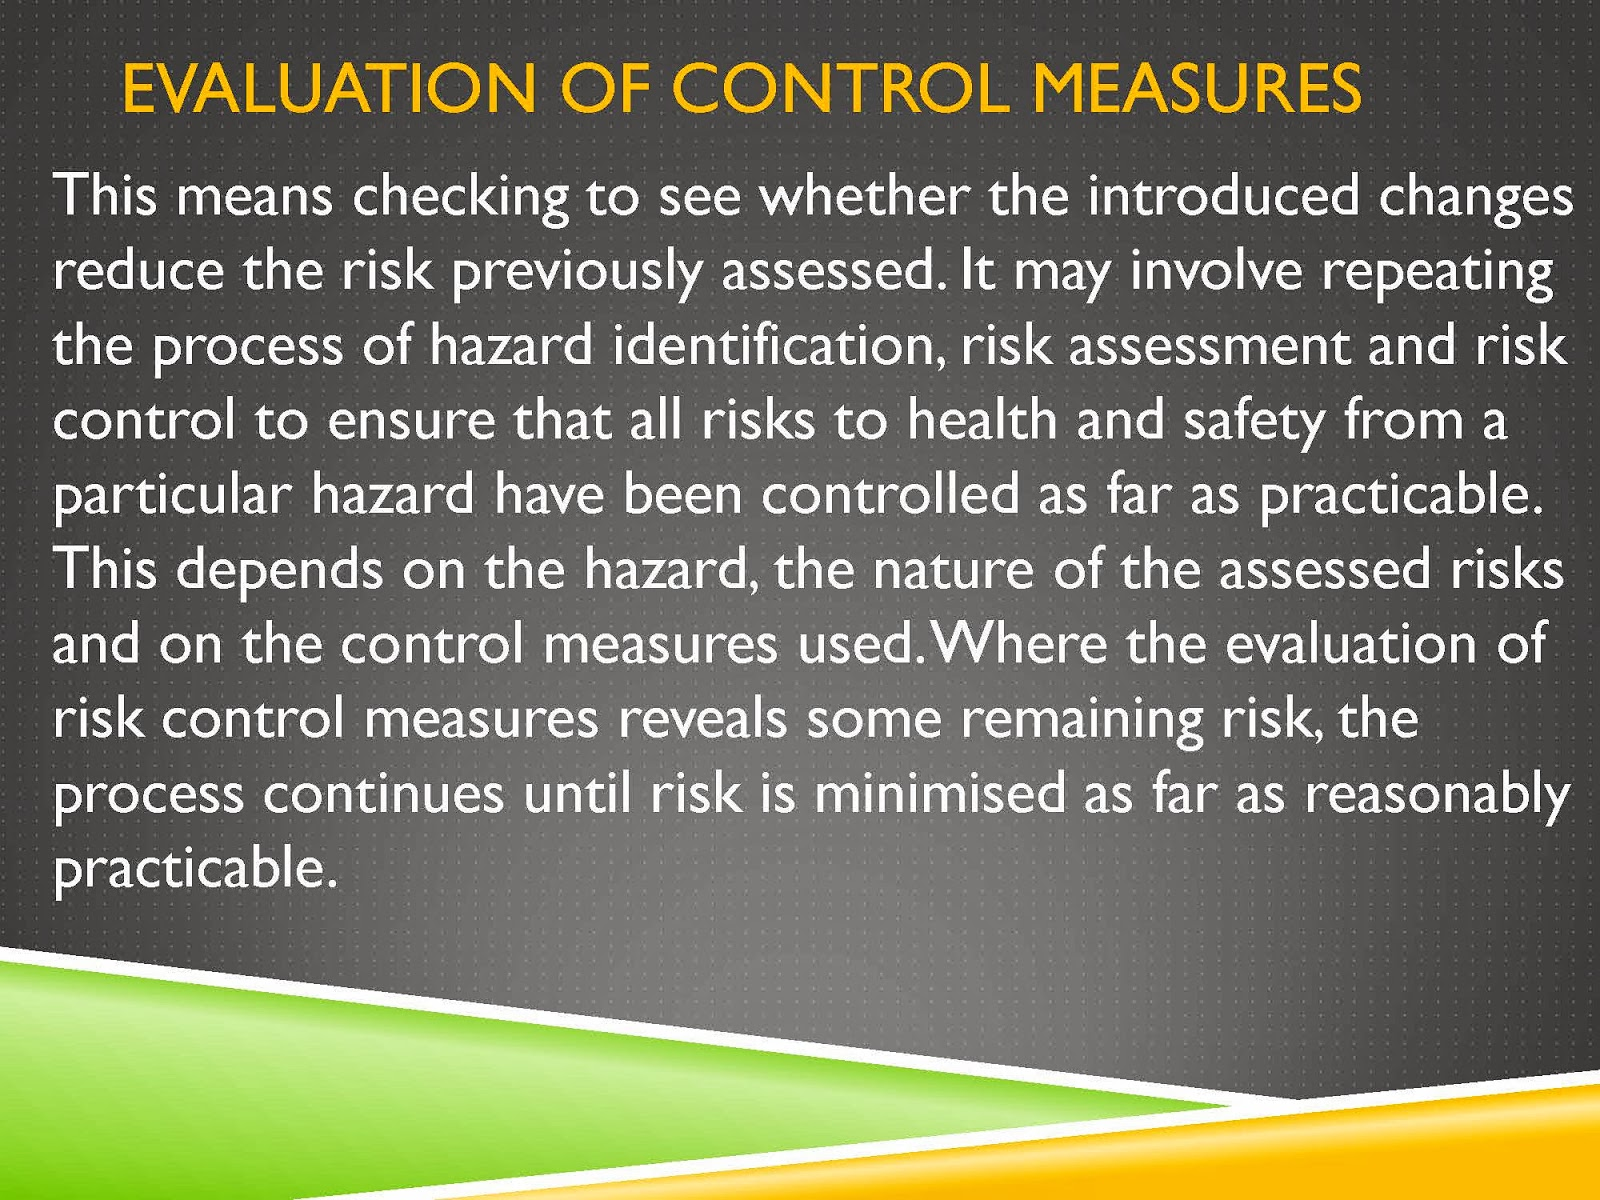 EVALUATE HAZARD IDENTIFICATION